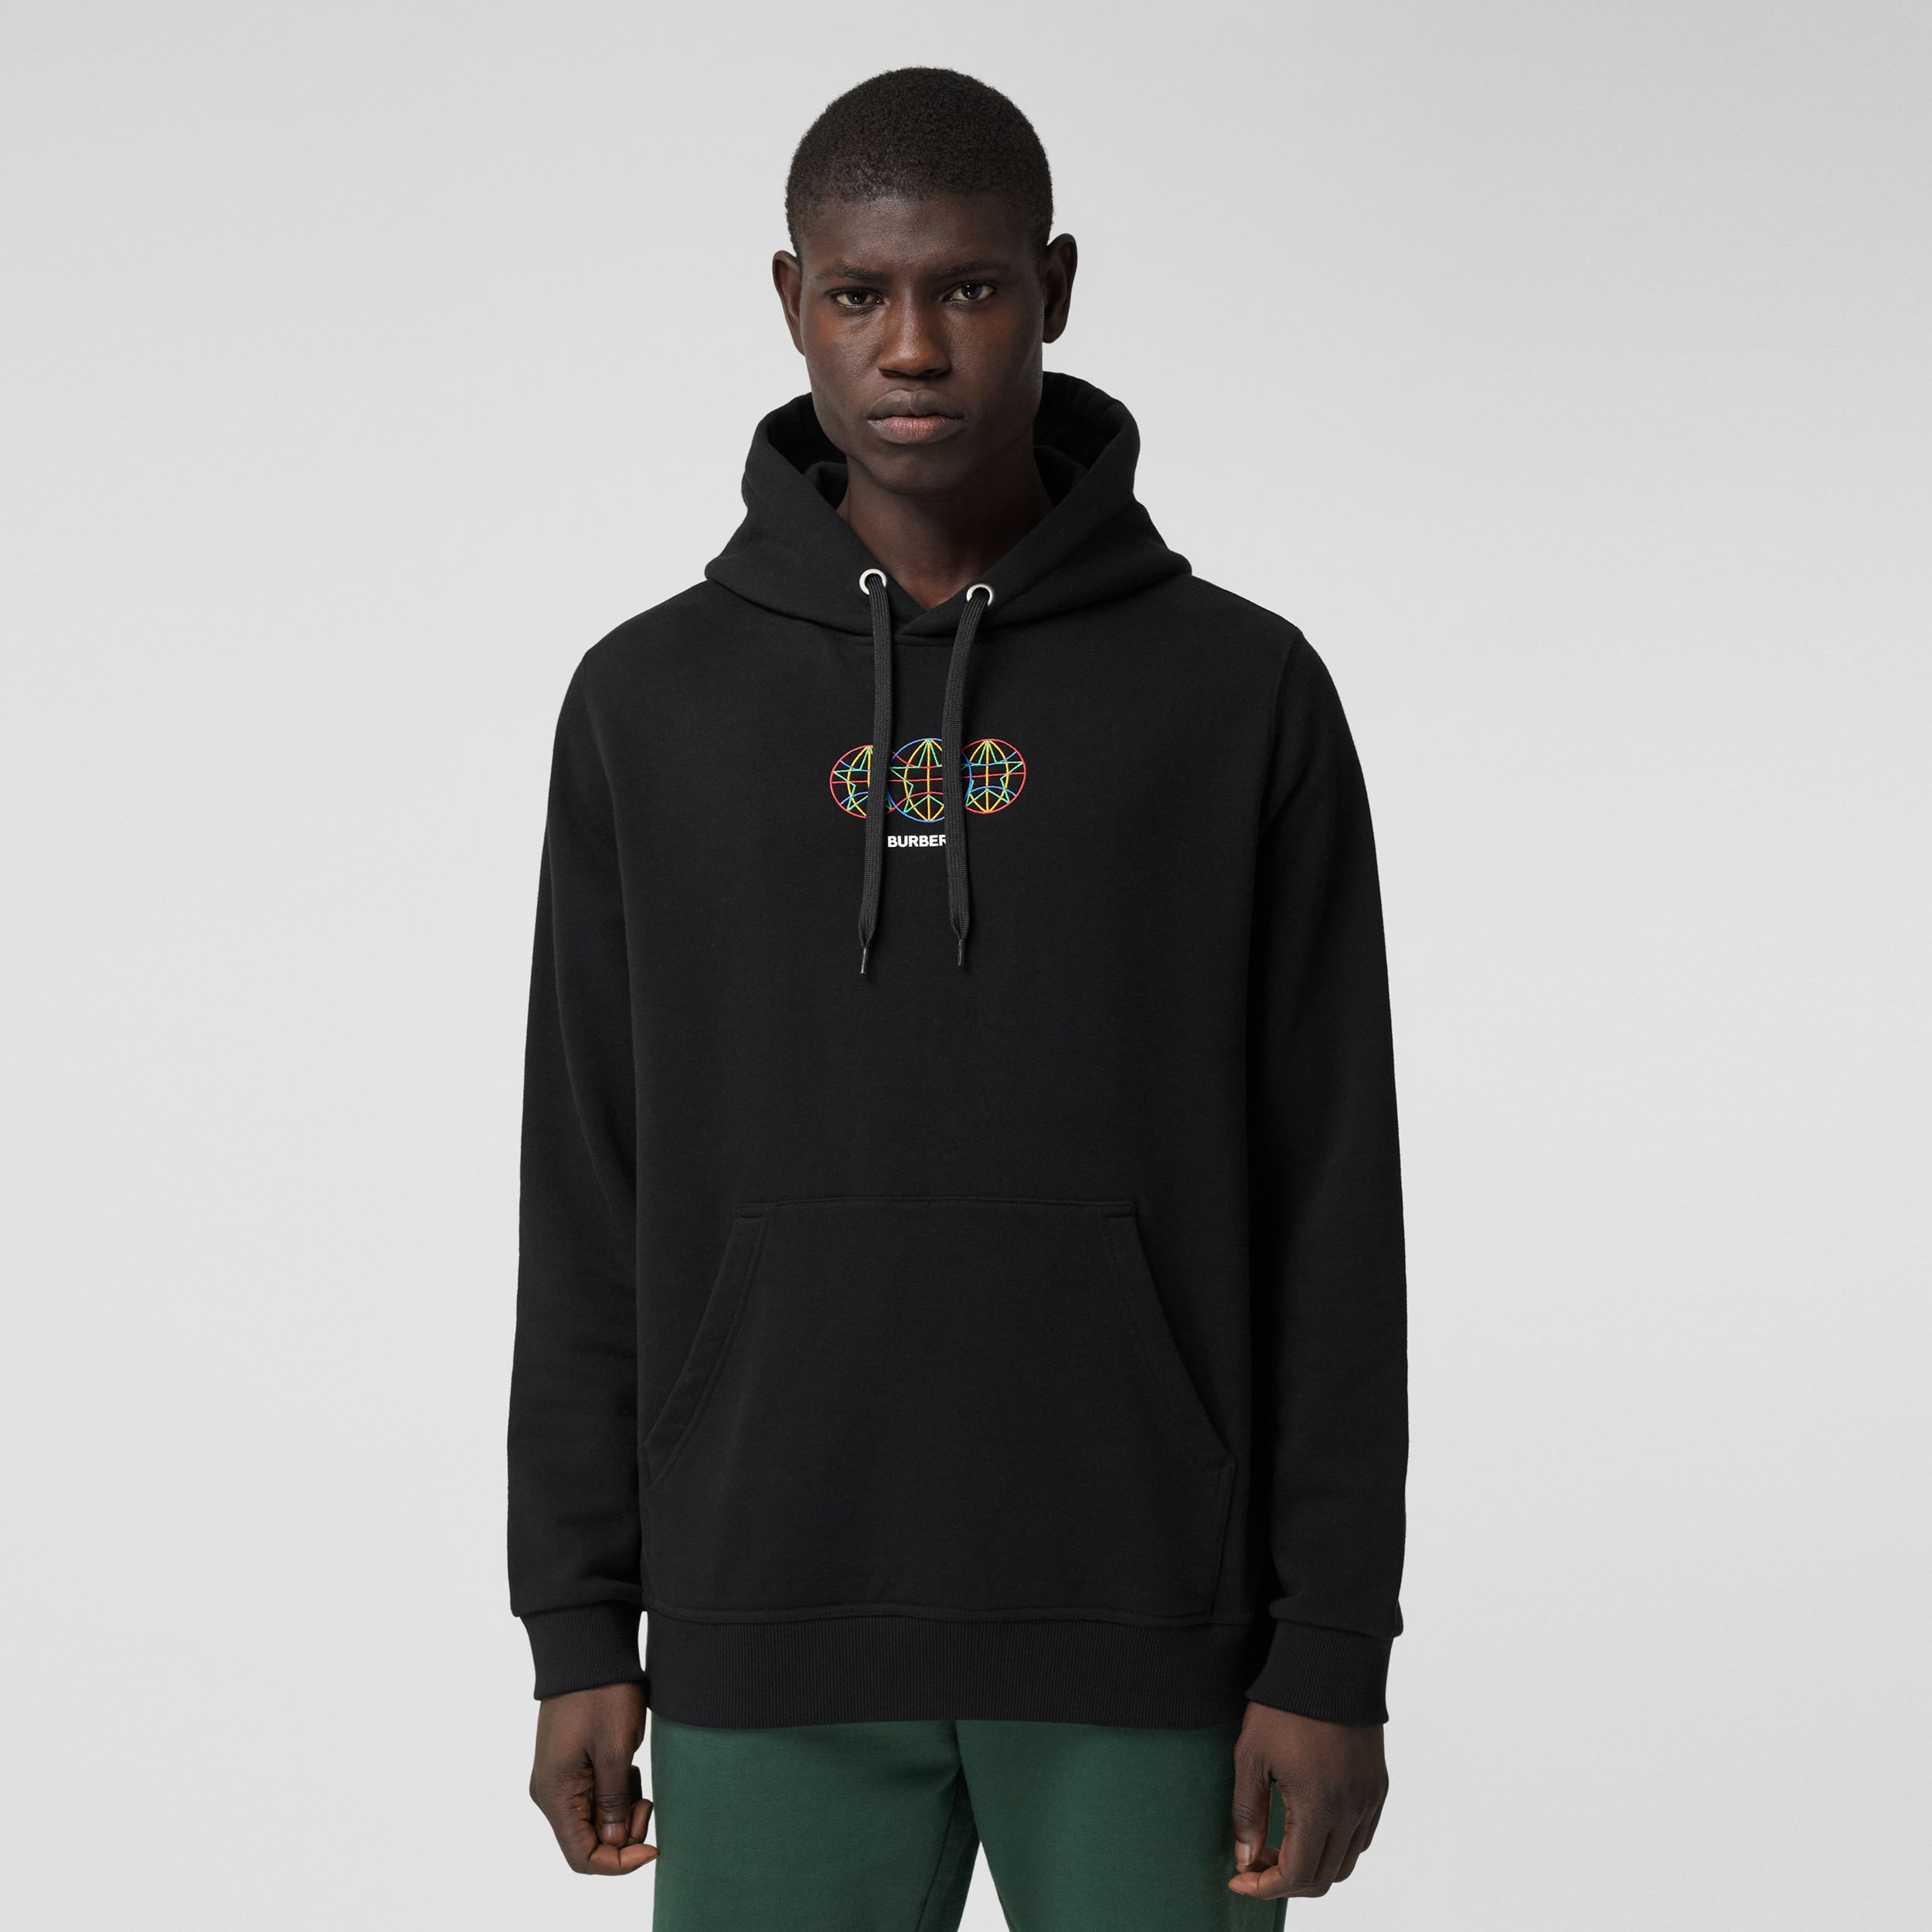 Embroidered Globe Graphic Cotton Hoodie in Black - Men | Burberry Australia - 1